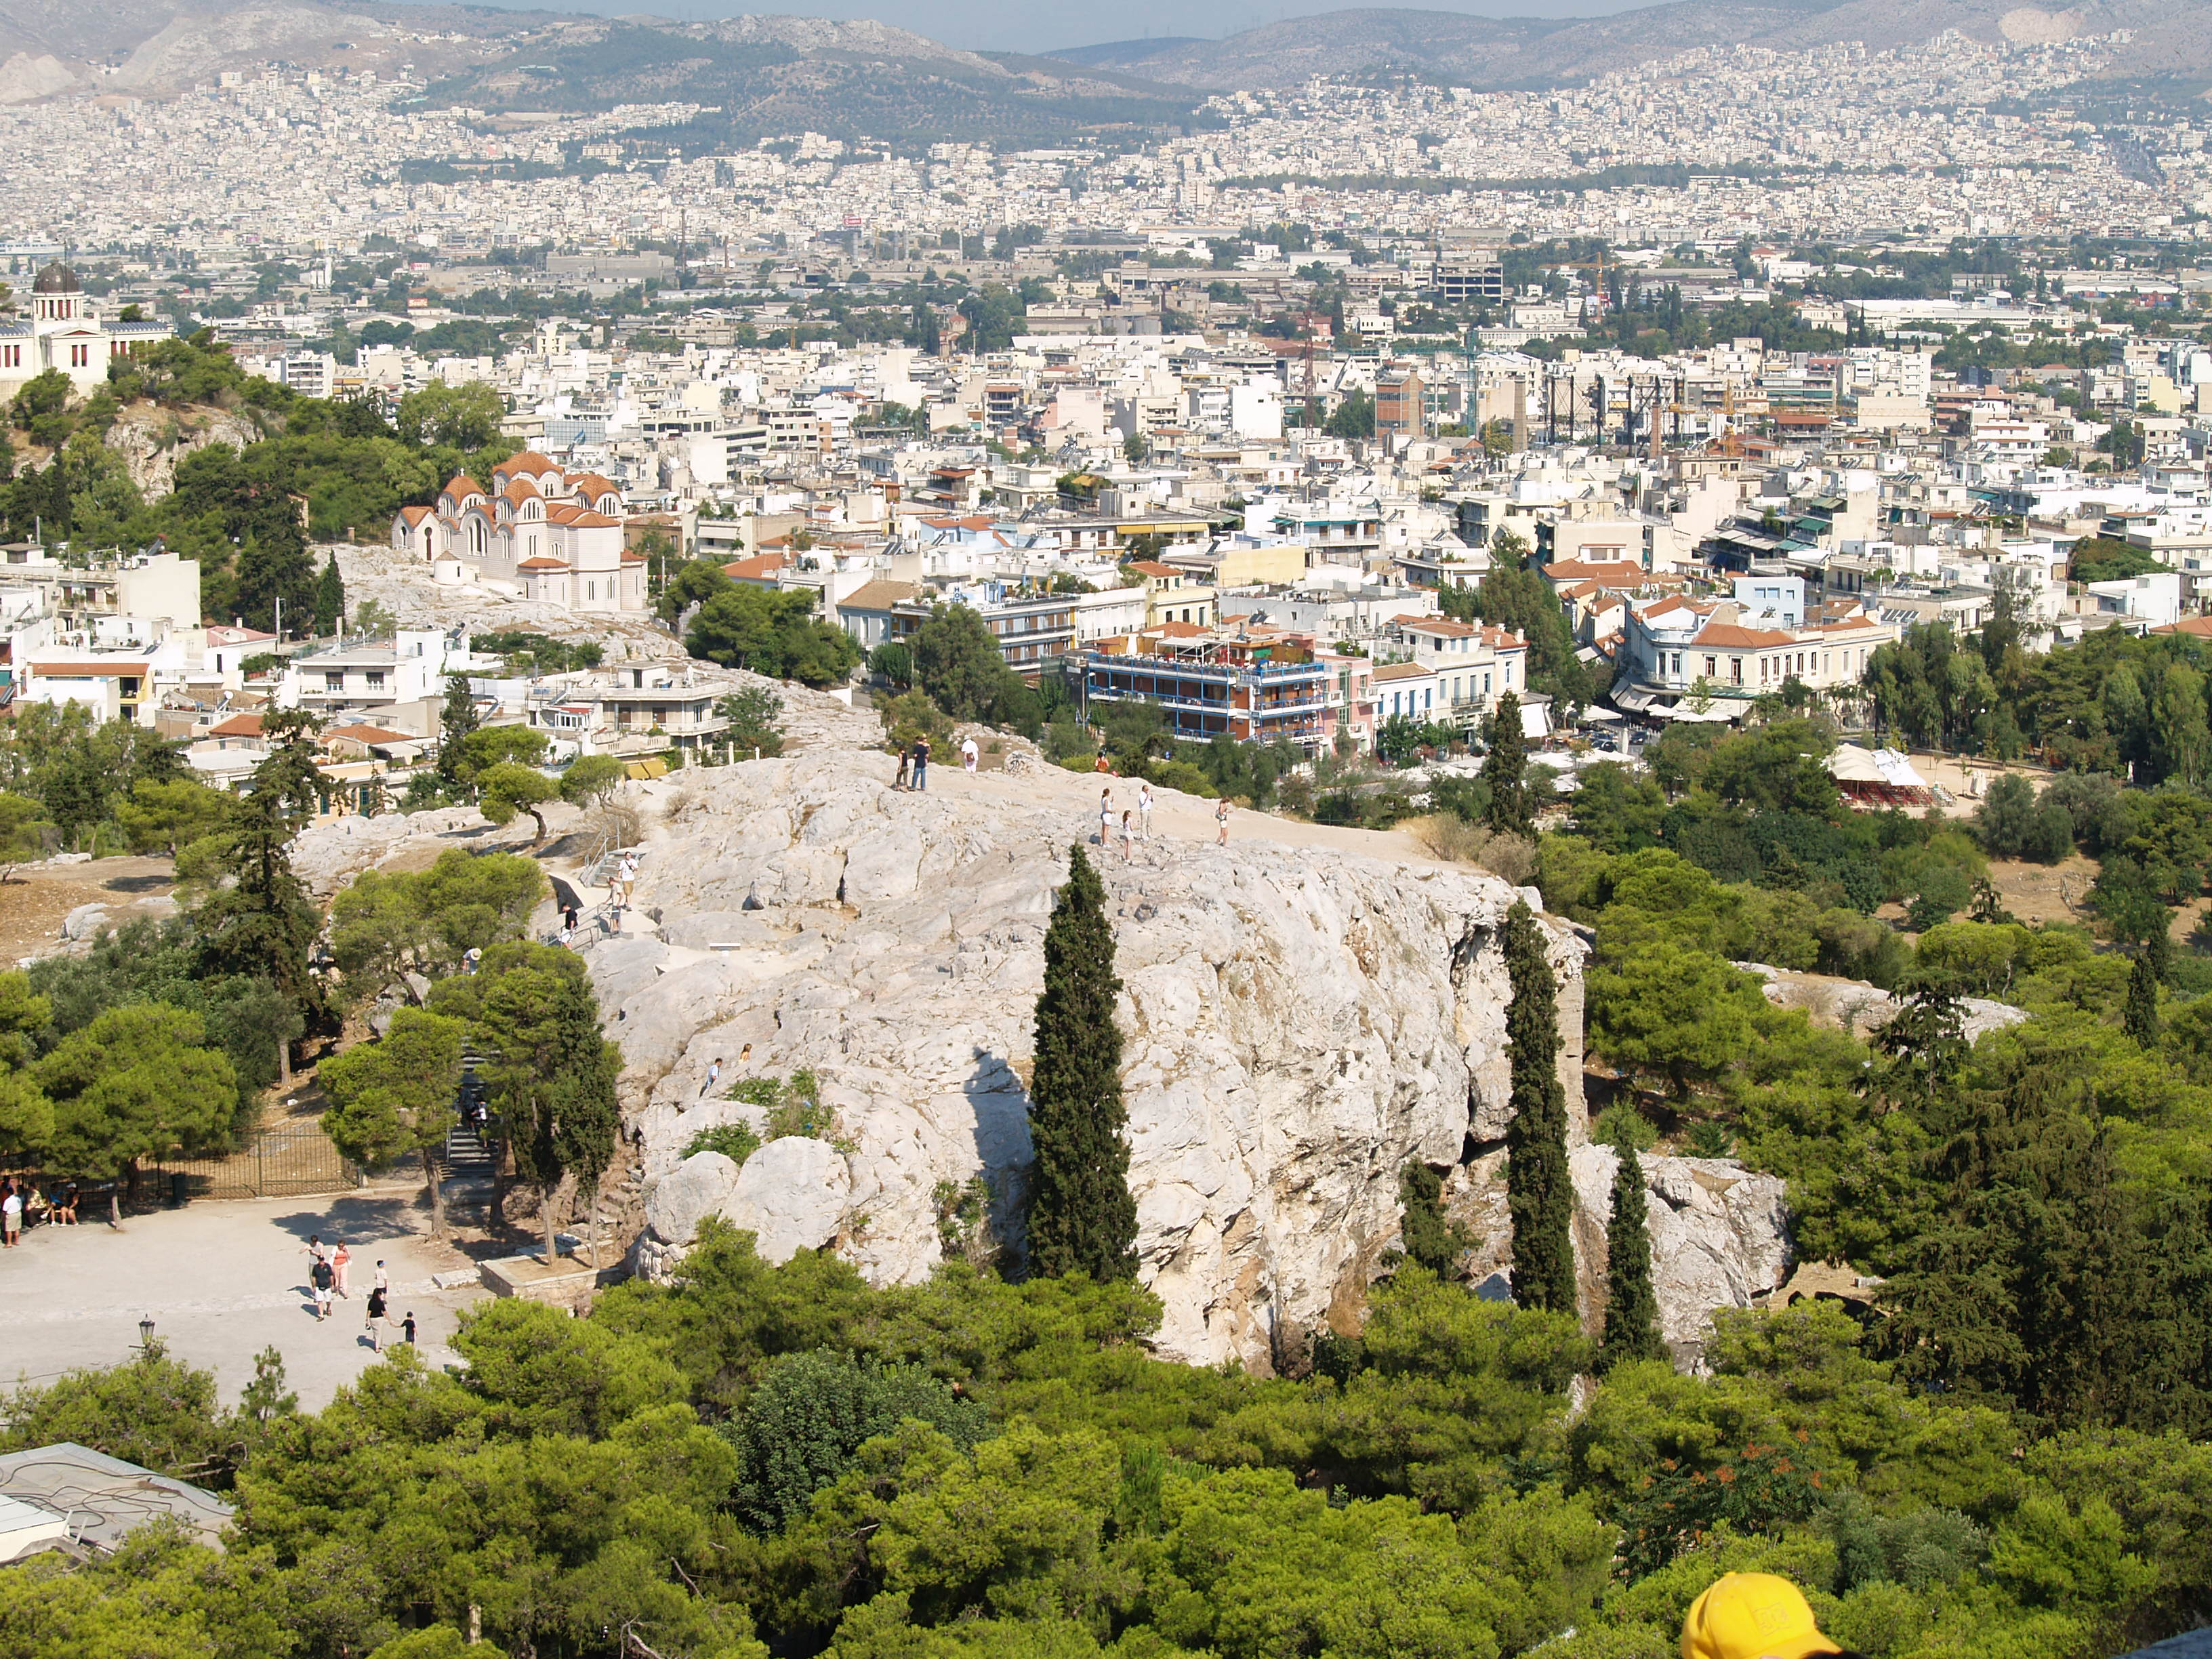 File:Areopagus.jpg - Wikimedia Commons